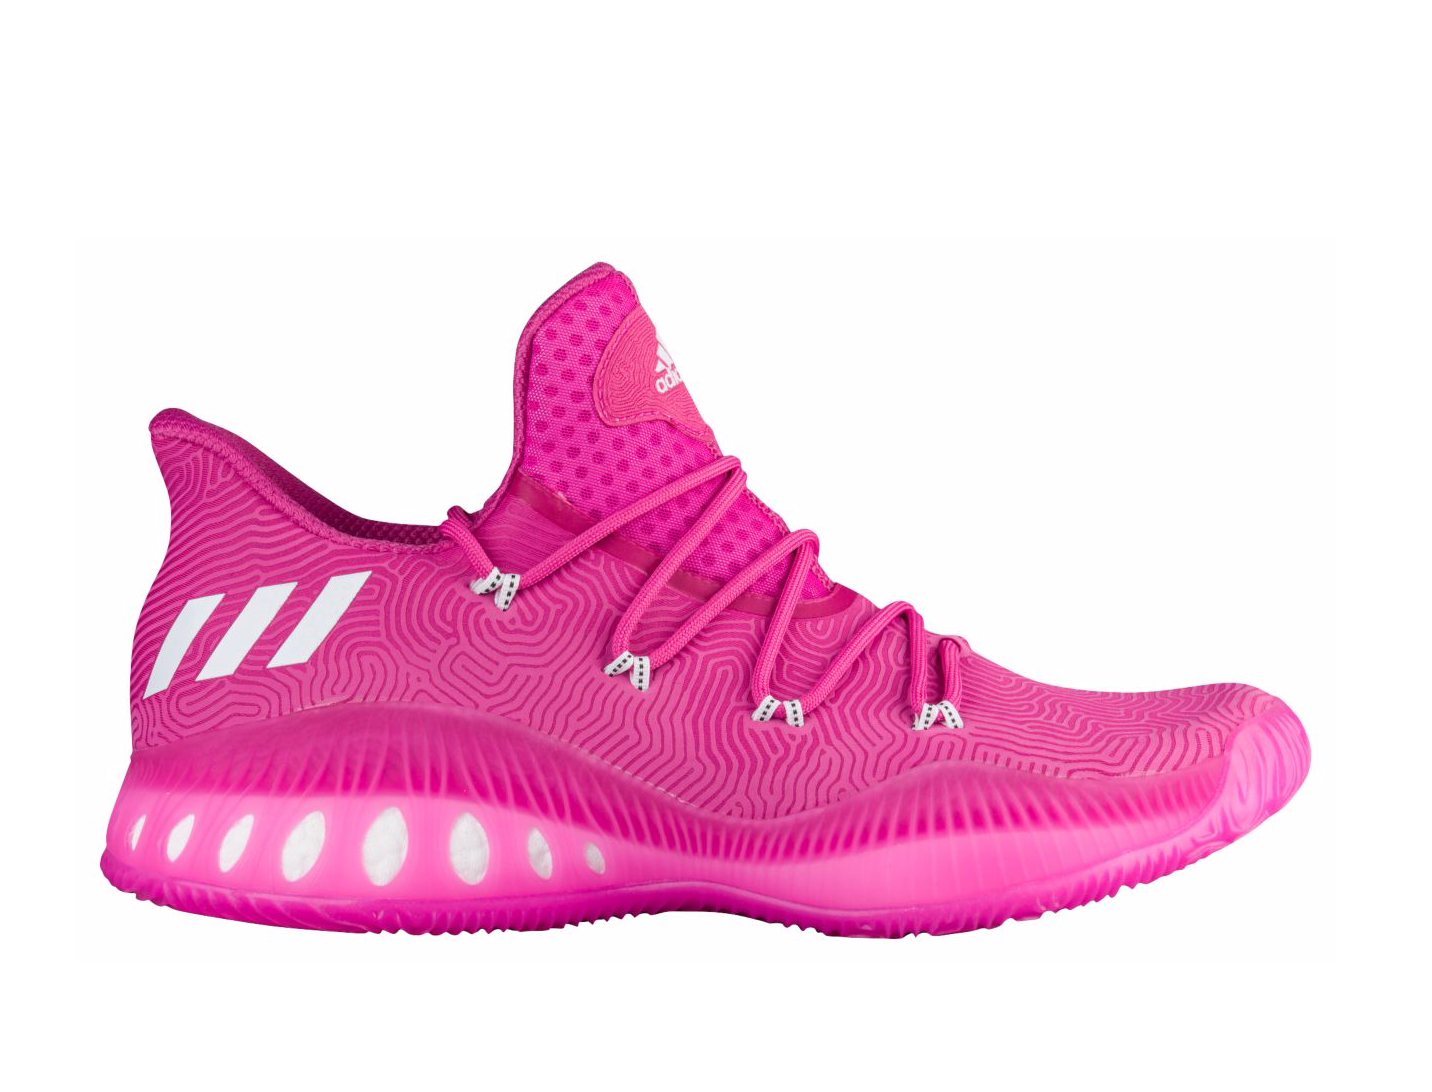 adidas crazy explosive low eastbay 7